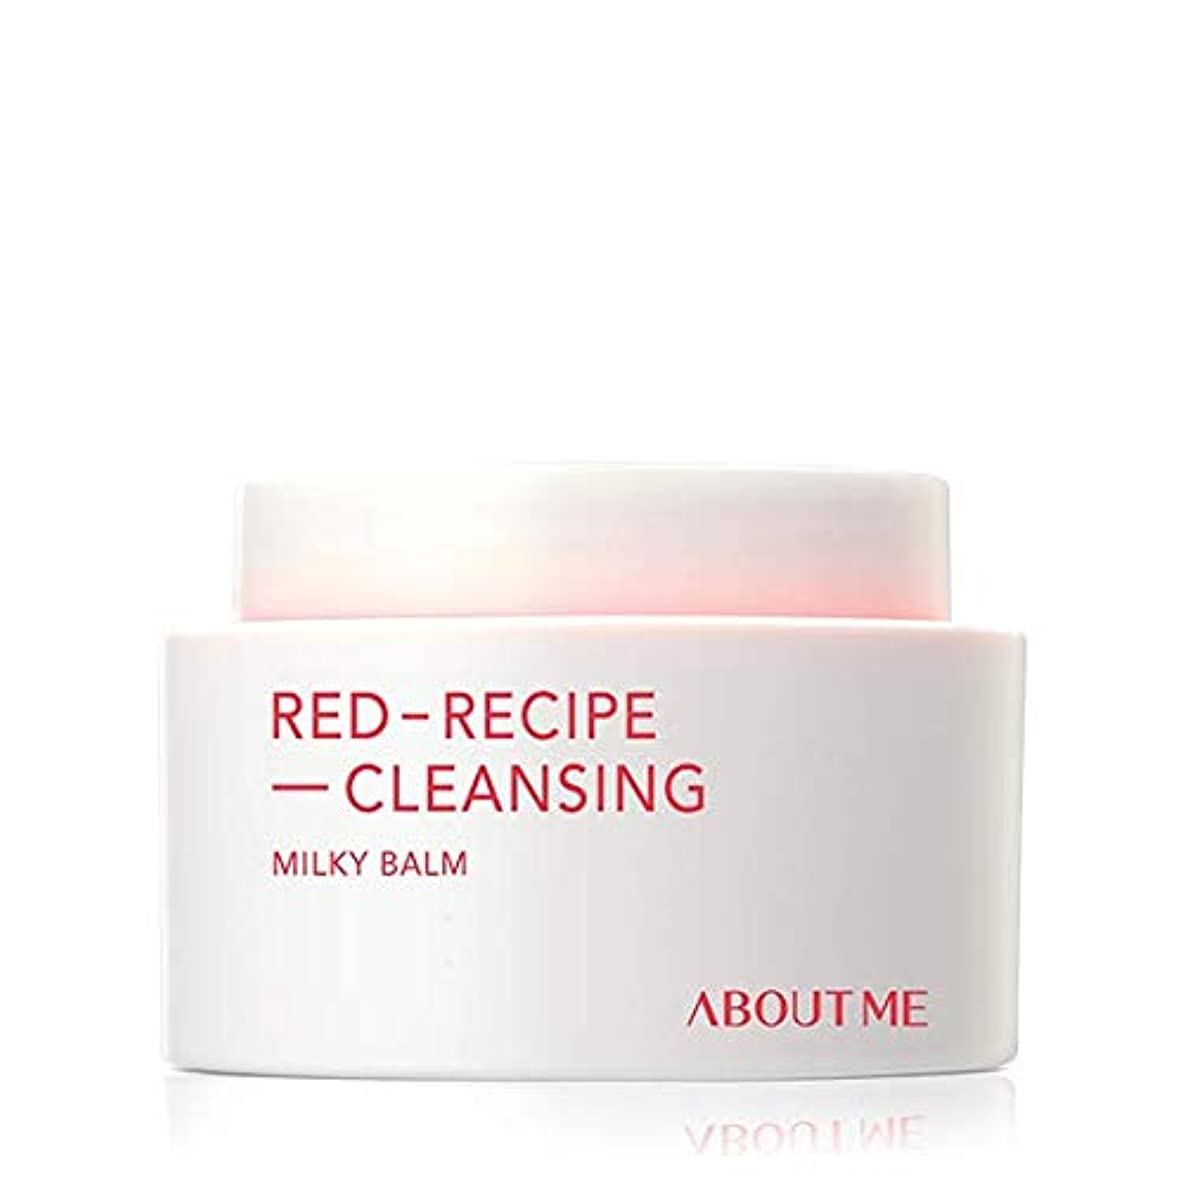 [ABOUT ME] アバウト米レッドレシピクレンジングミルキー夜 90ml / ABOUT ME RED RECIPE CLEANSING MILKY BALM 90ml [並行輸入品]